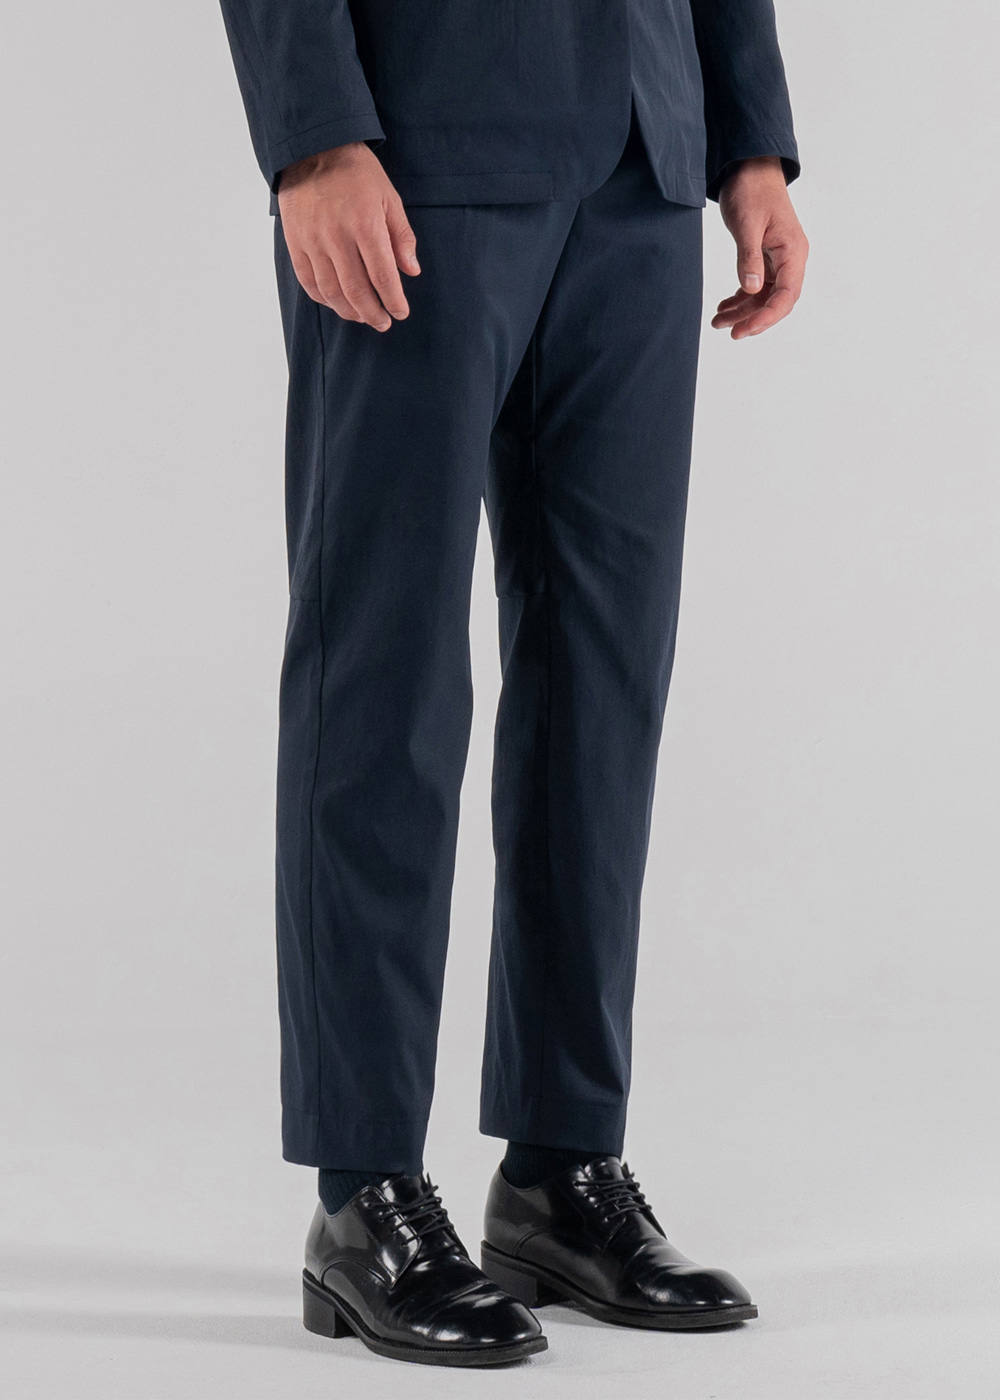 TECHNICAL PANT #1 NV MEN'S